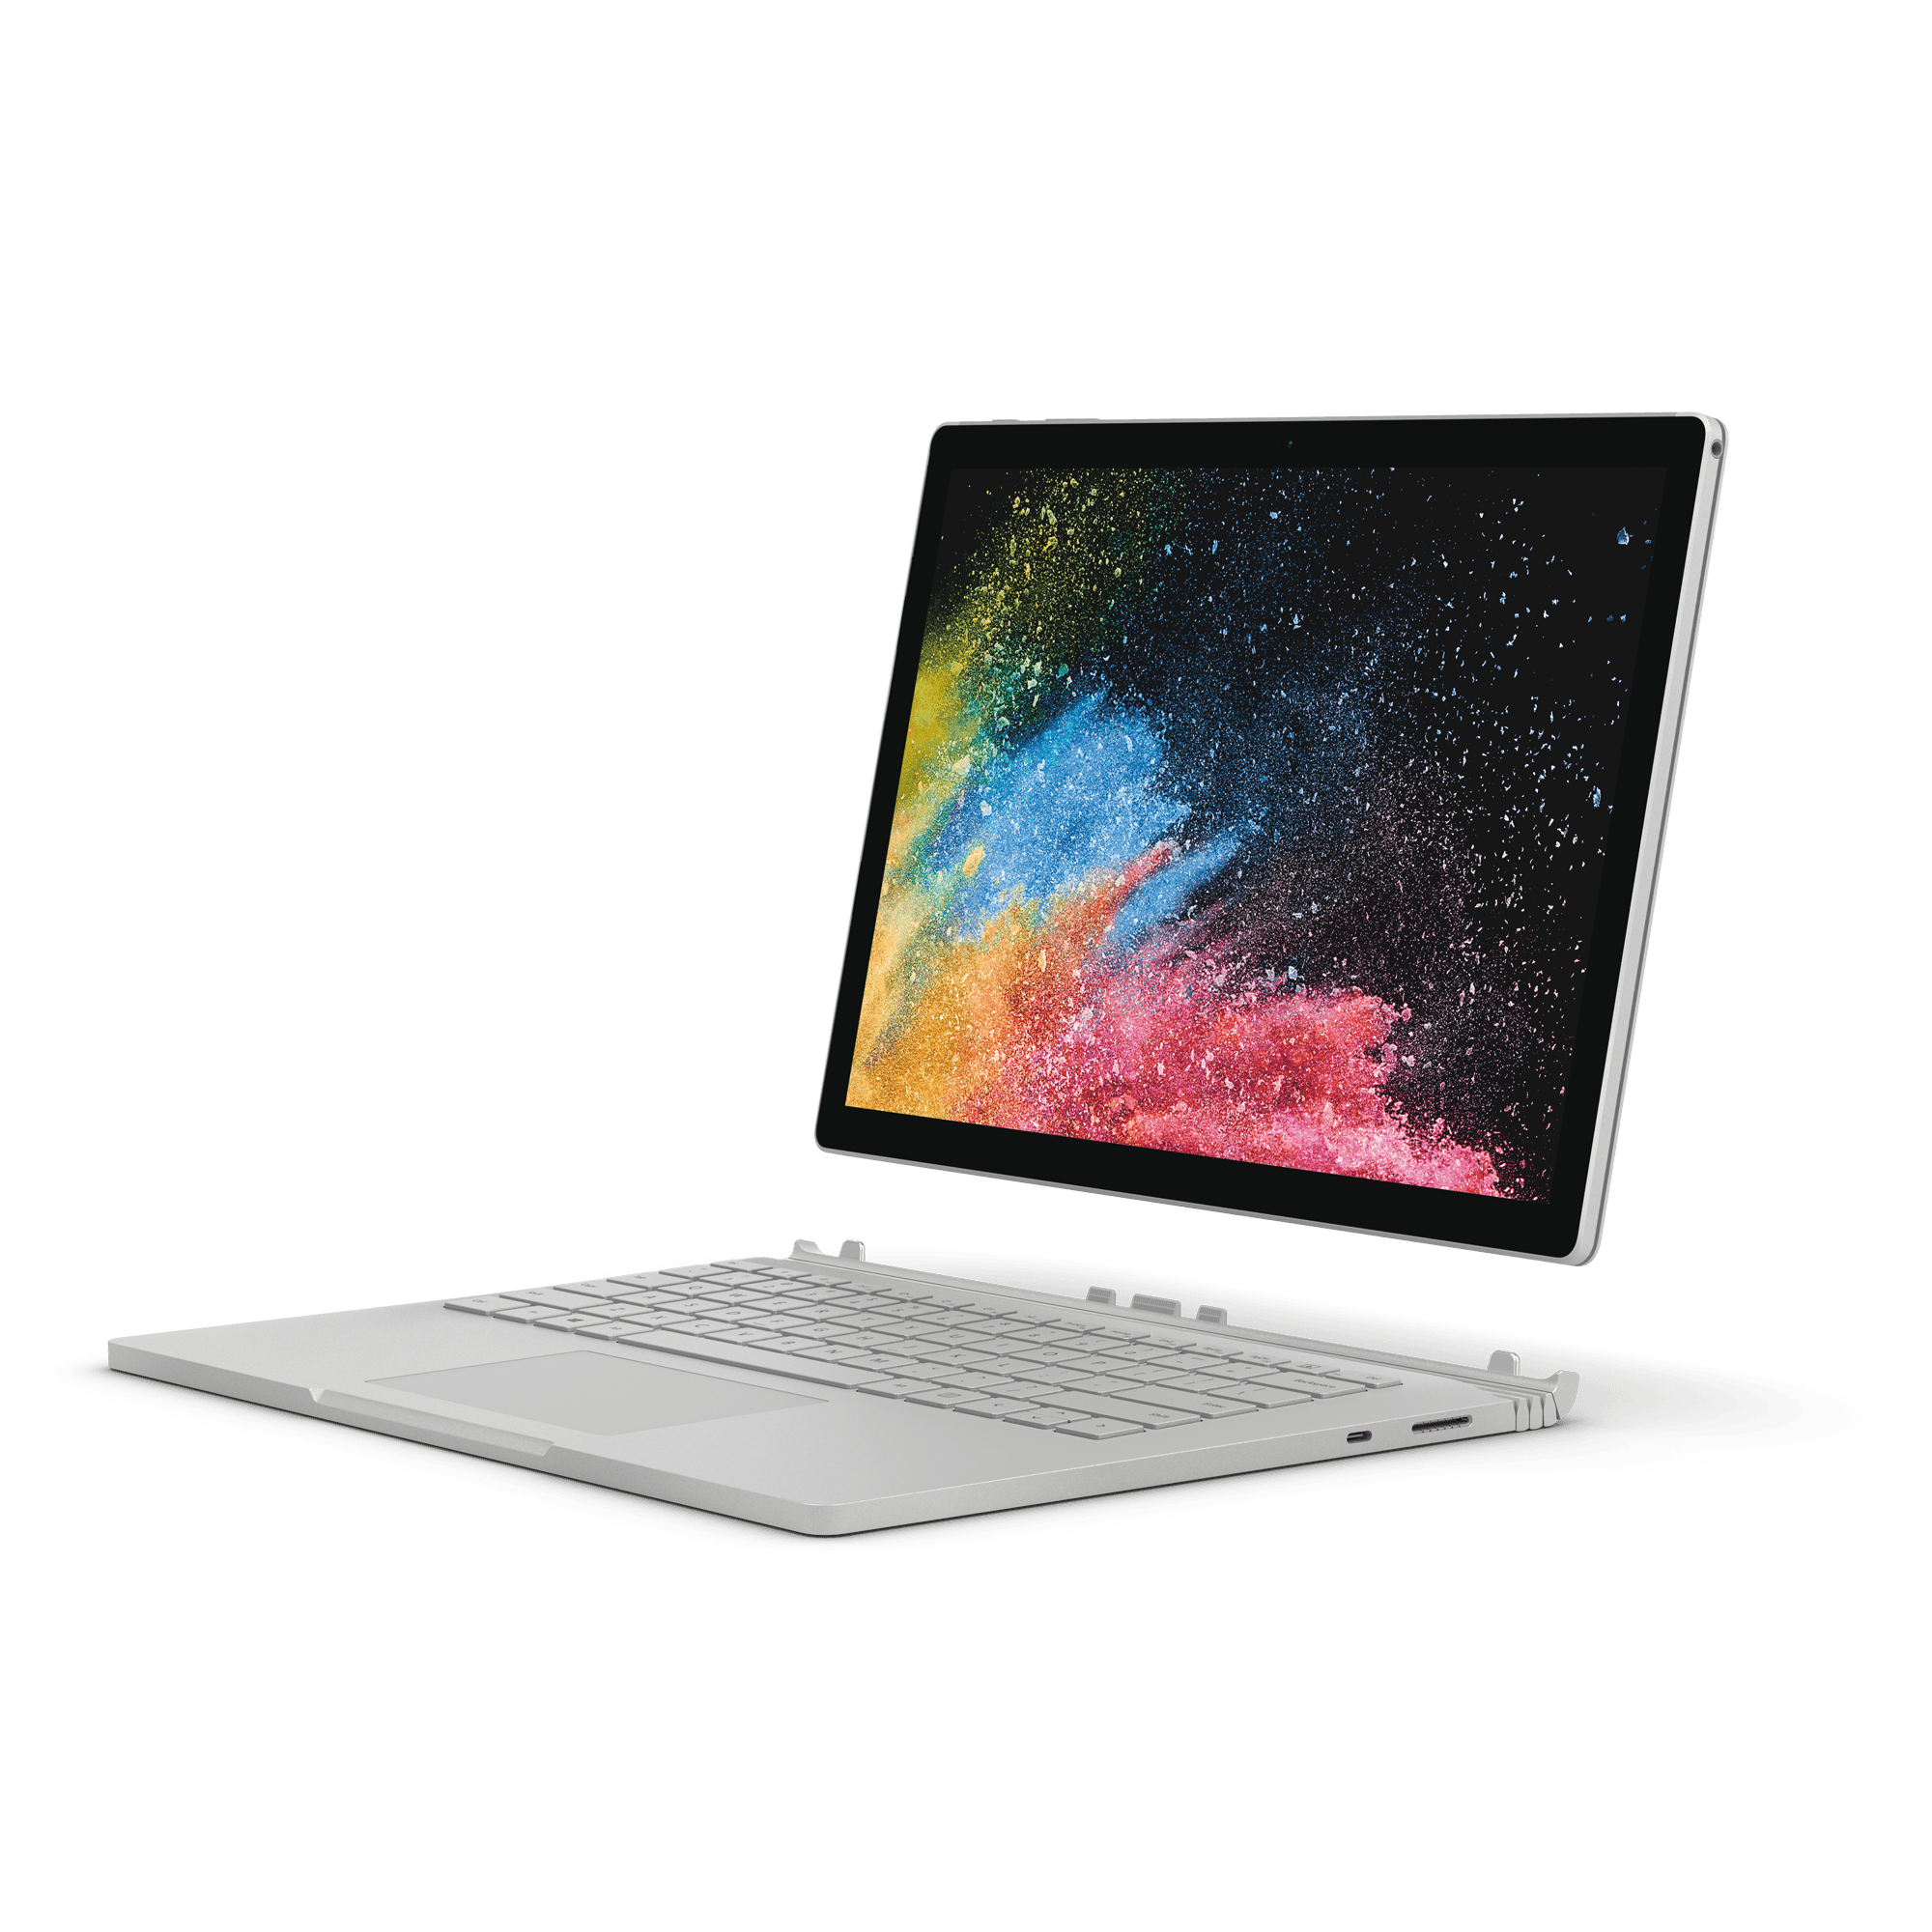 microsoft surface book 2 image 3